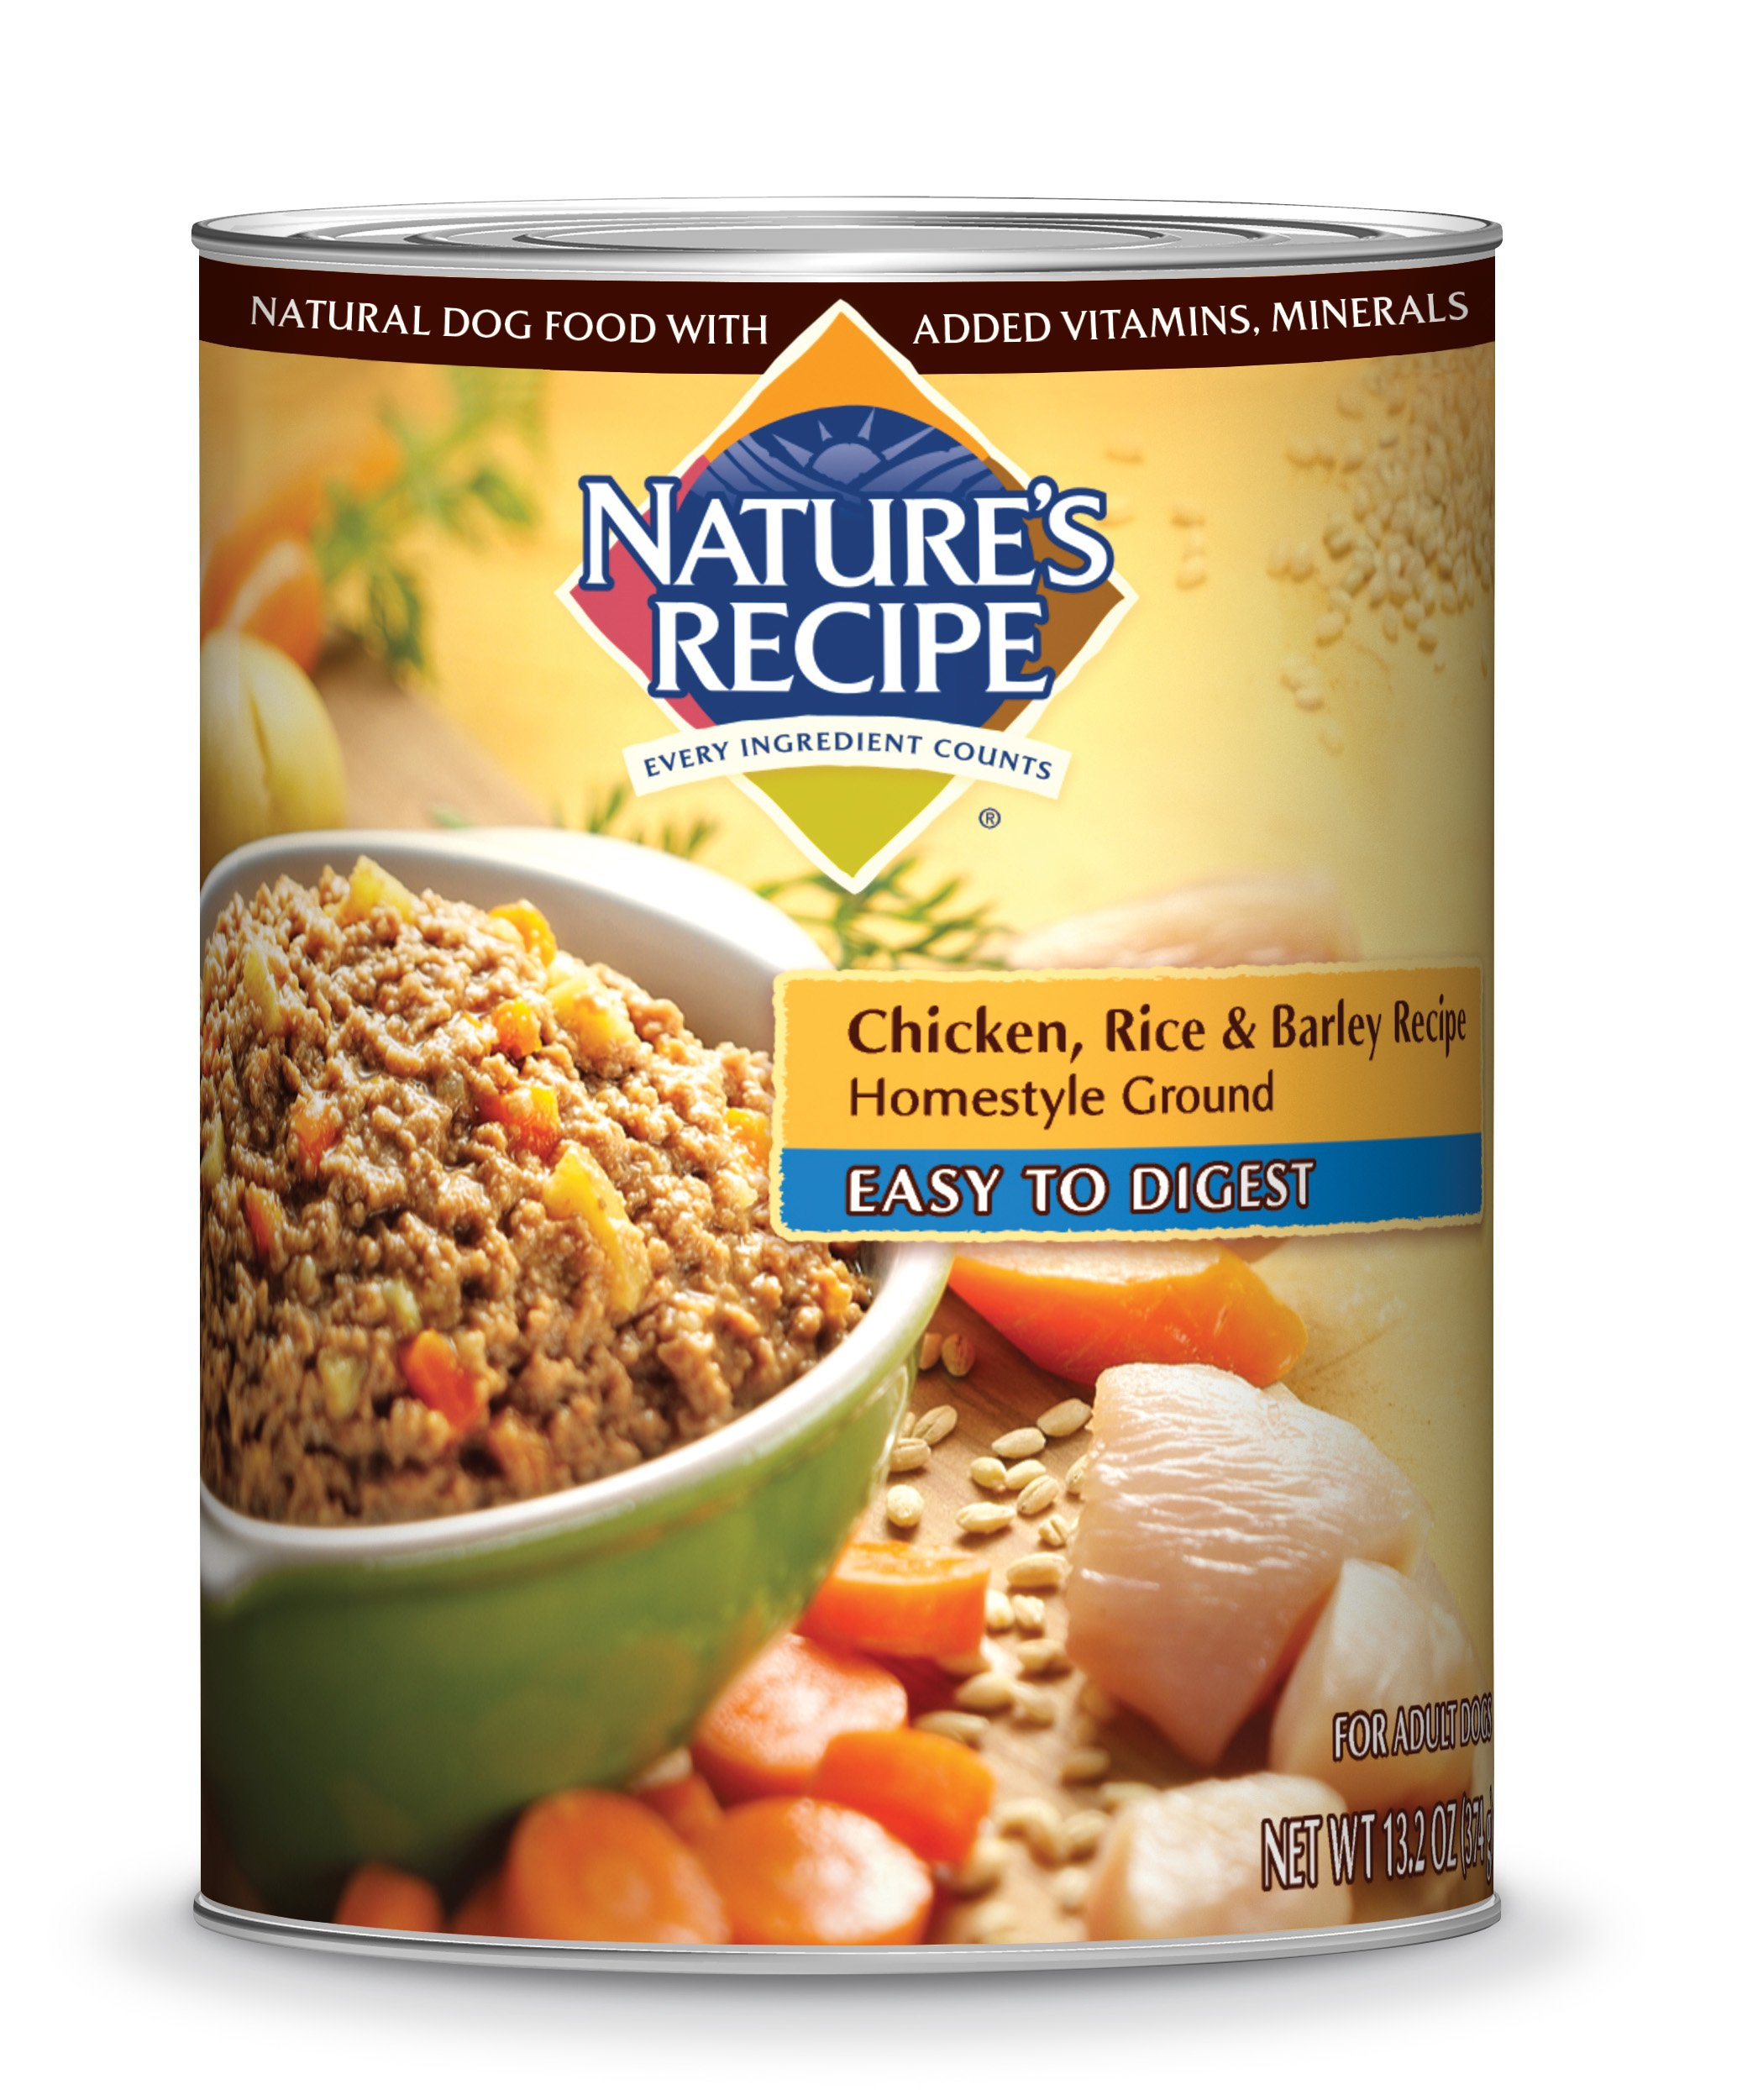 Nature's Recipe Canned Dog Food for Adult Dog, Easy to Digest Chicken, Rice, and Barley Recipe, Homestyle Ground, 13.2 Ounce Cans (Pack of 12)